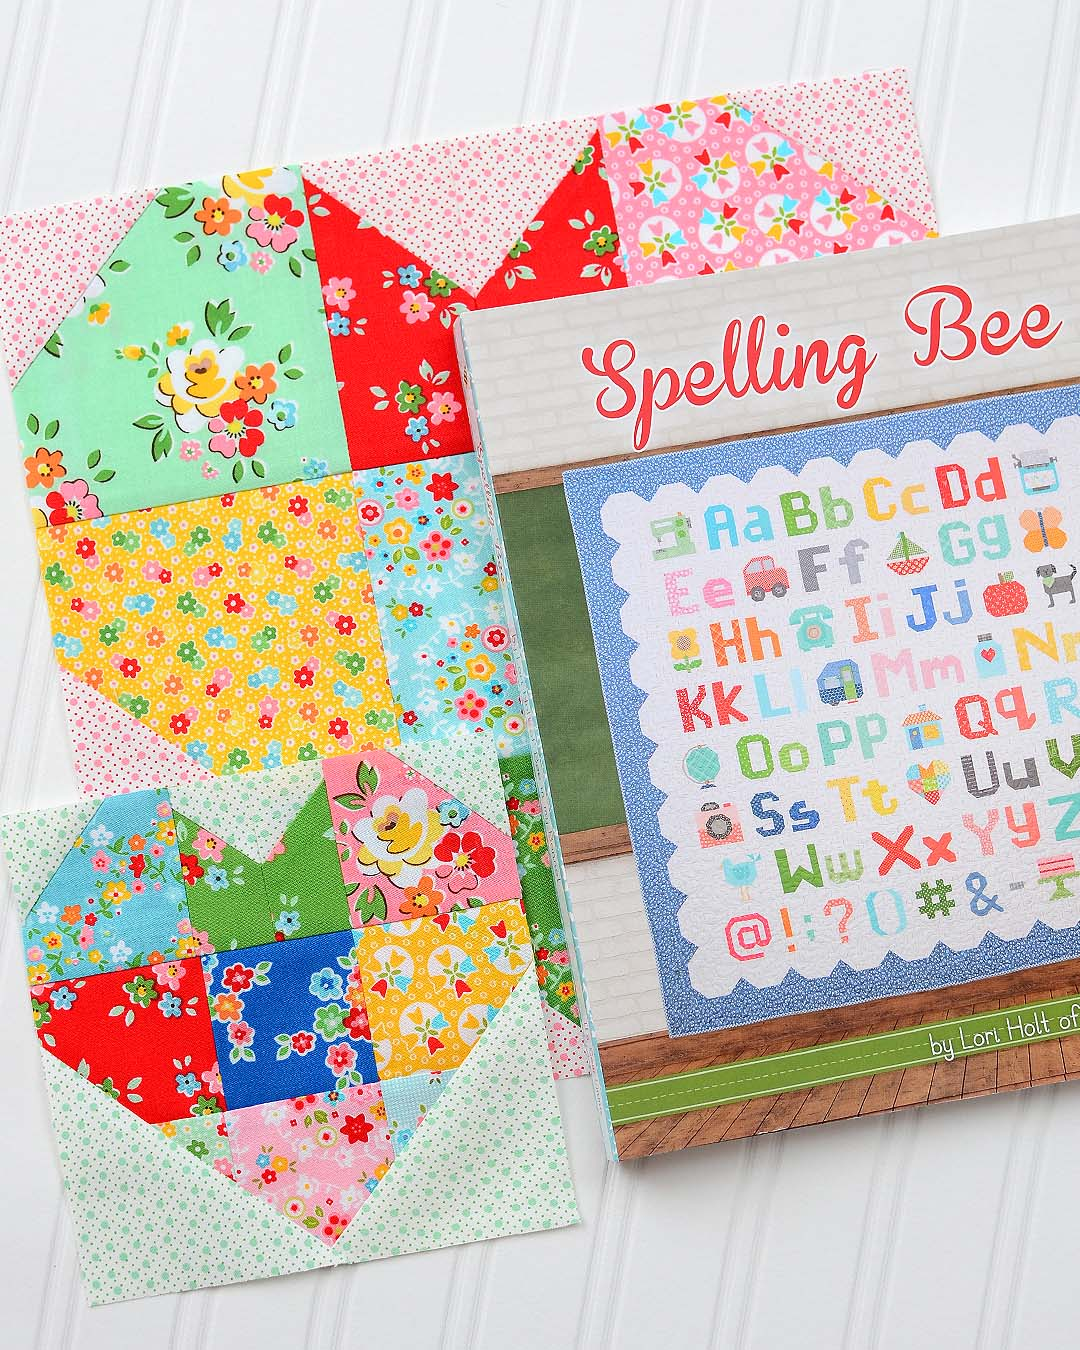 Spelling Bee Sew Along Heart Quilt Blocks by Nadra Ridgeway of ellis & higgs